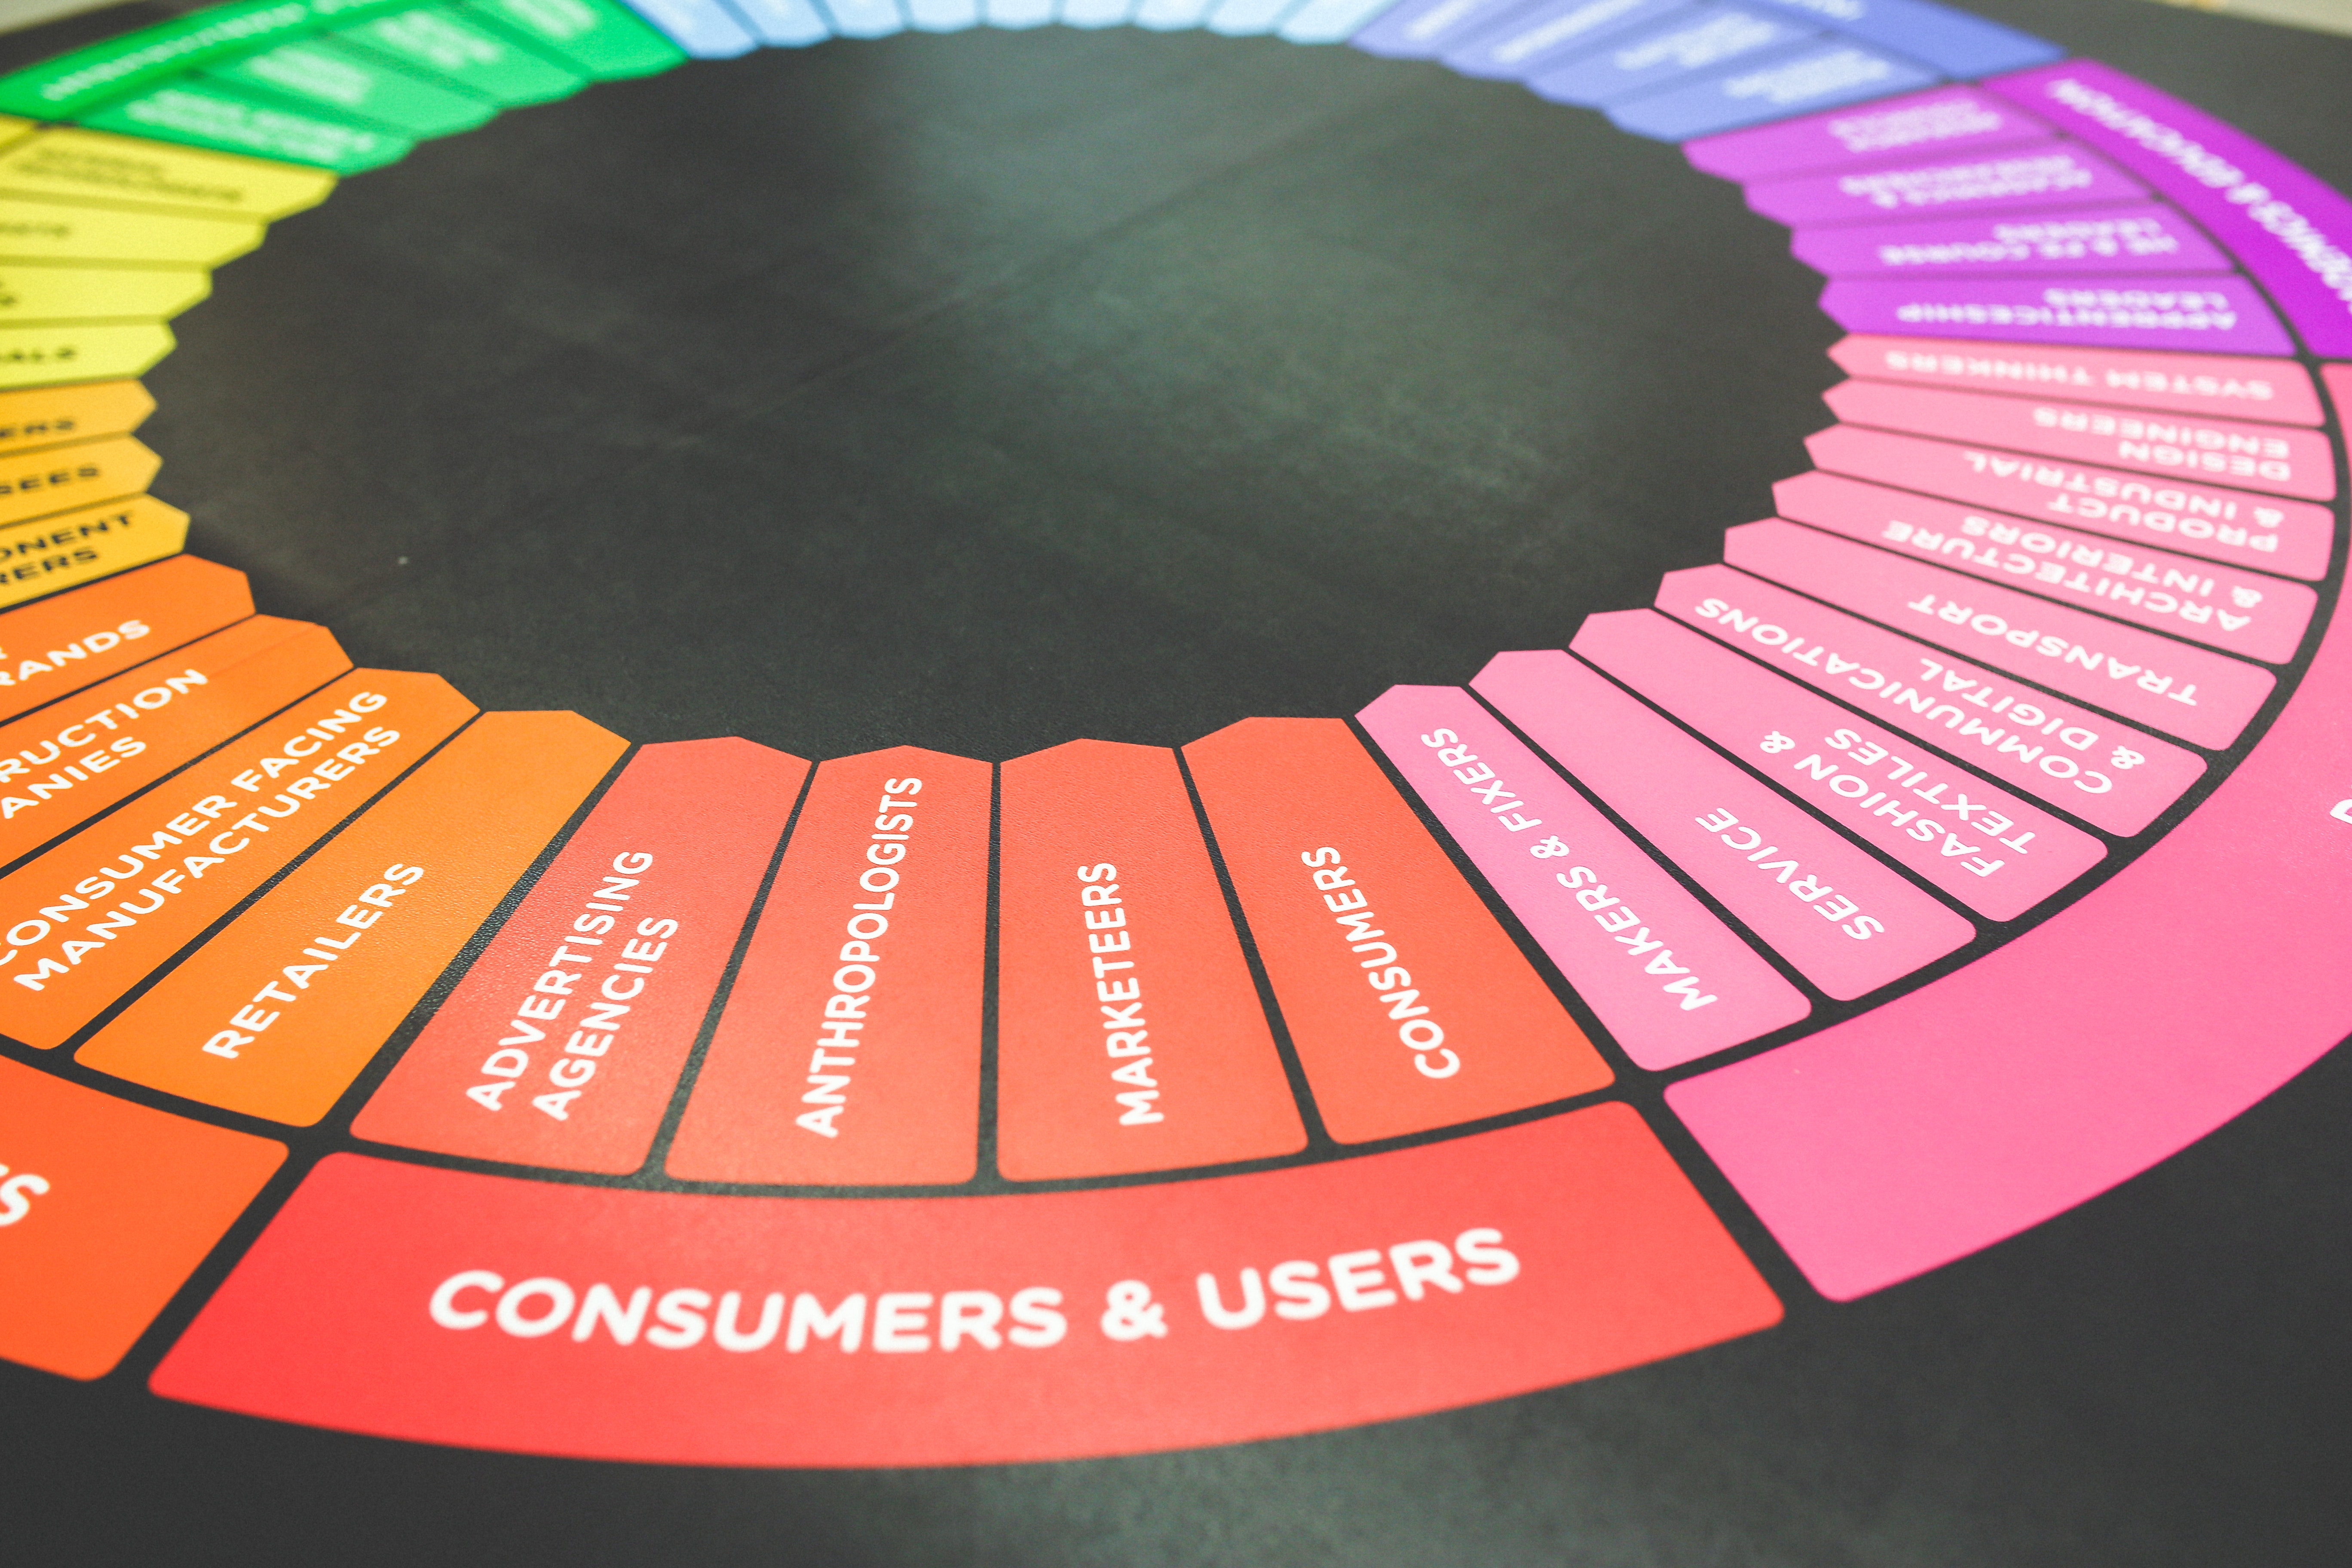 Customers & Users / Color Wheel, Ads, Adversting, Customers, Marketing, HQ Photo